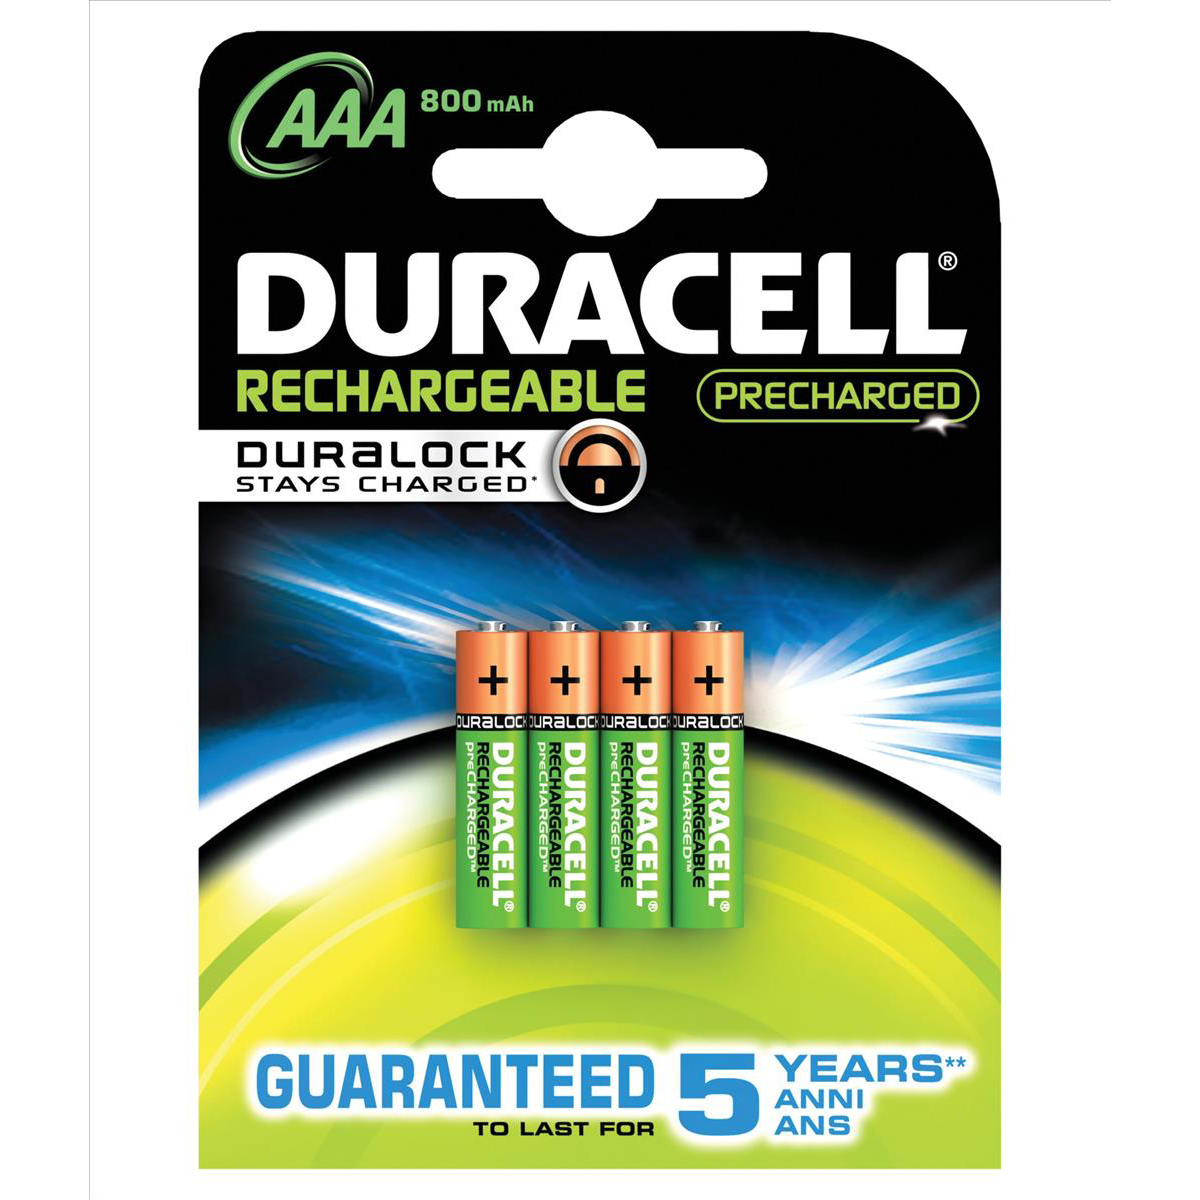 AAA Duracell Stay Charged Battery Long-life Rechargeable 850mAh AAA Size 1.2V Ref 81364755 Pack 4